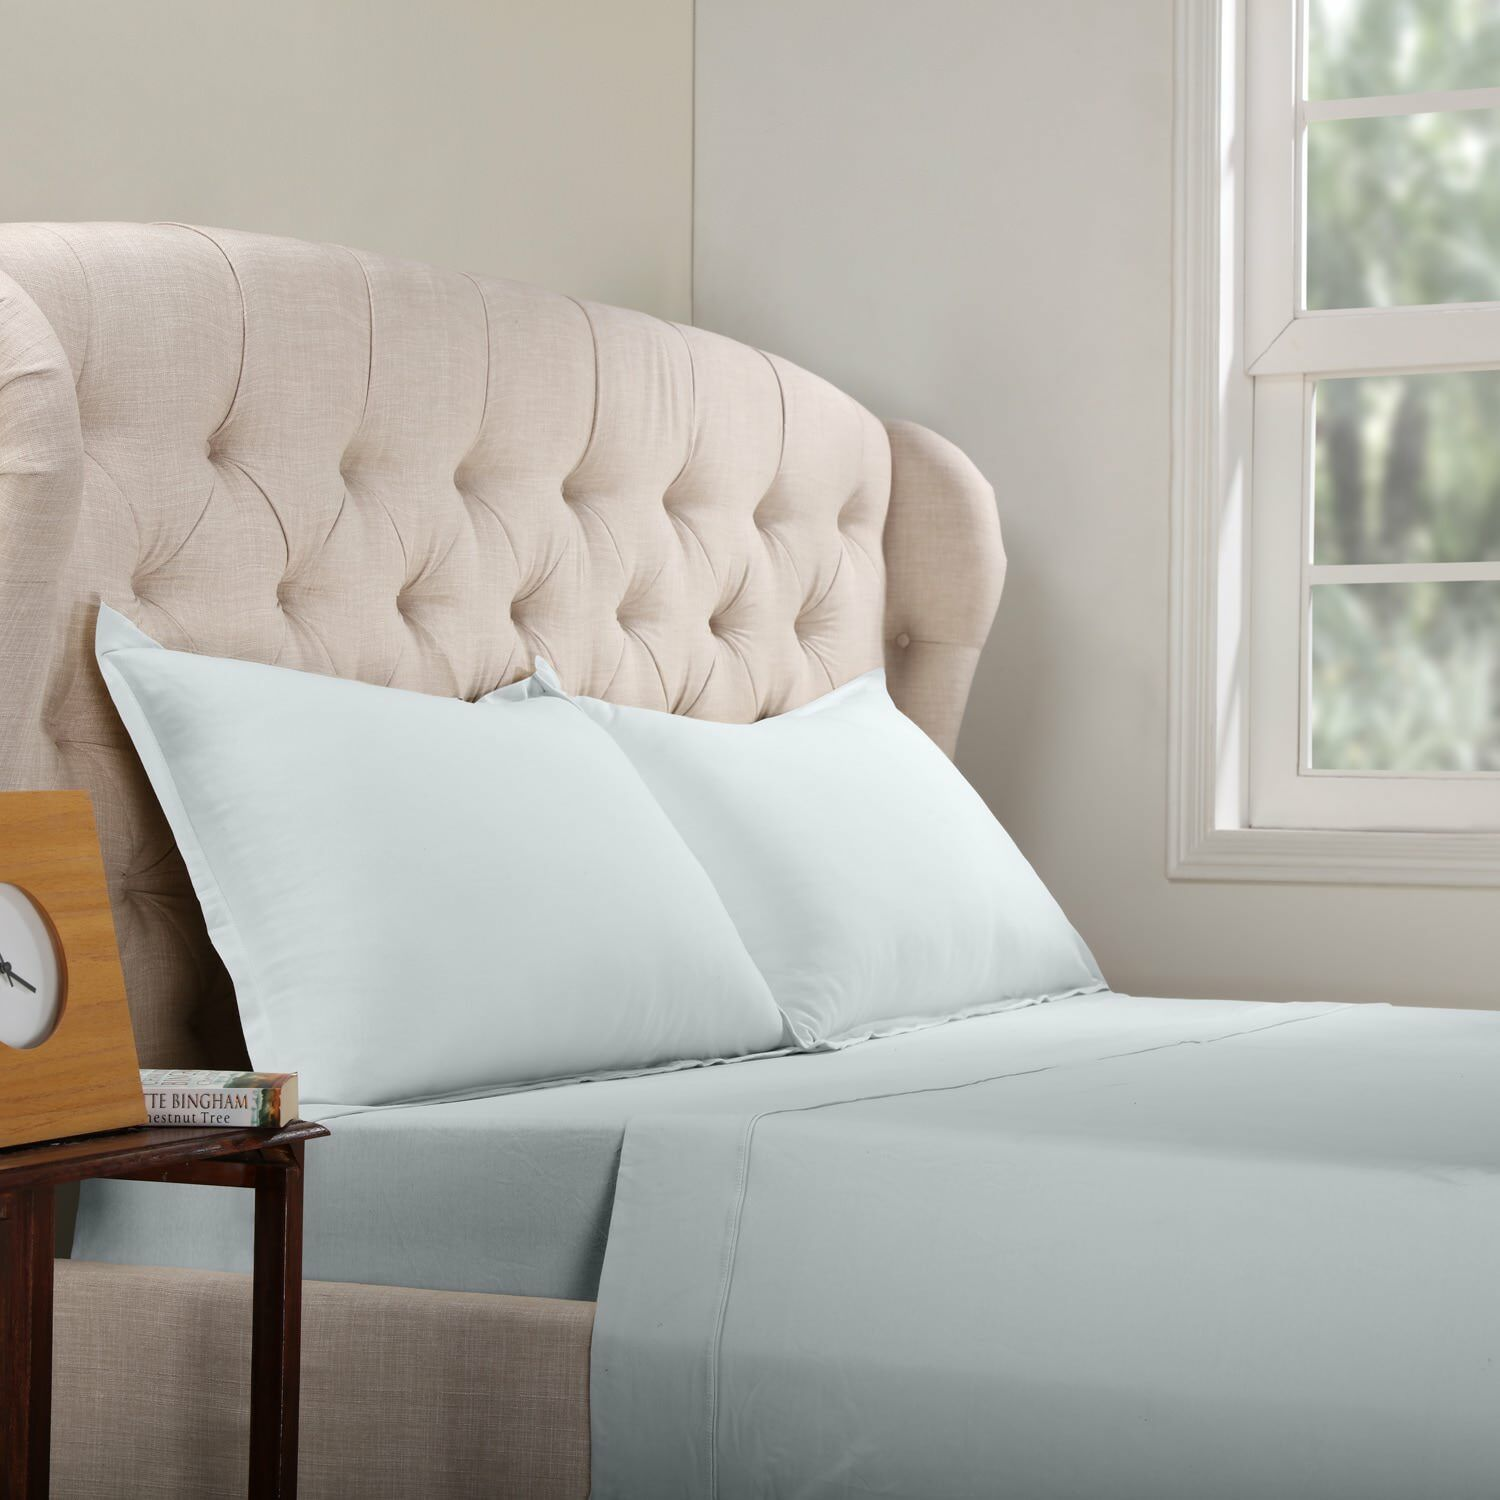 Geoffrey 100% Cotton Jersey Bed Sheet Set Color: Silver, Size: California King